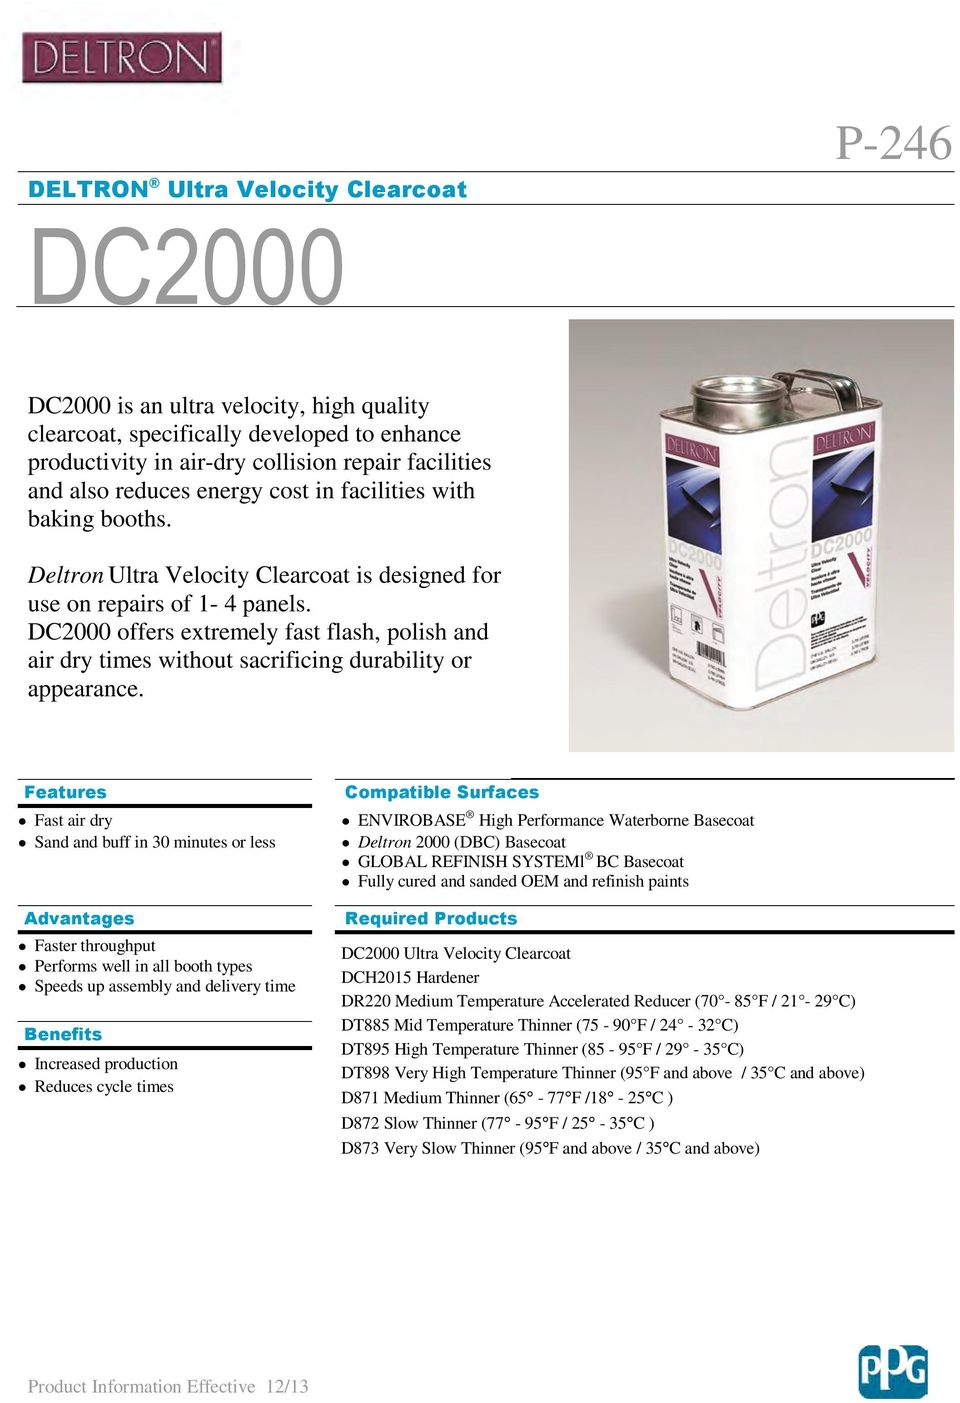 DC2000 offers extremely fast flash, polish and air dry times without sacrificing durability or appearance.